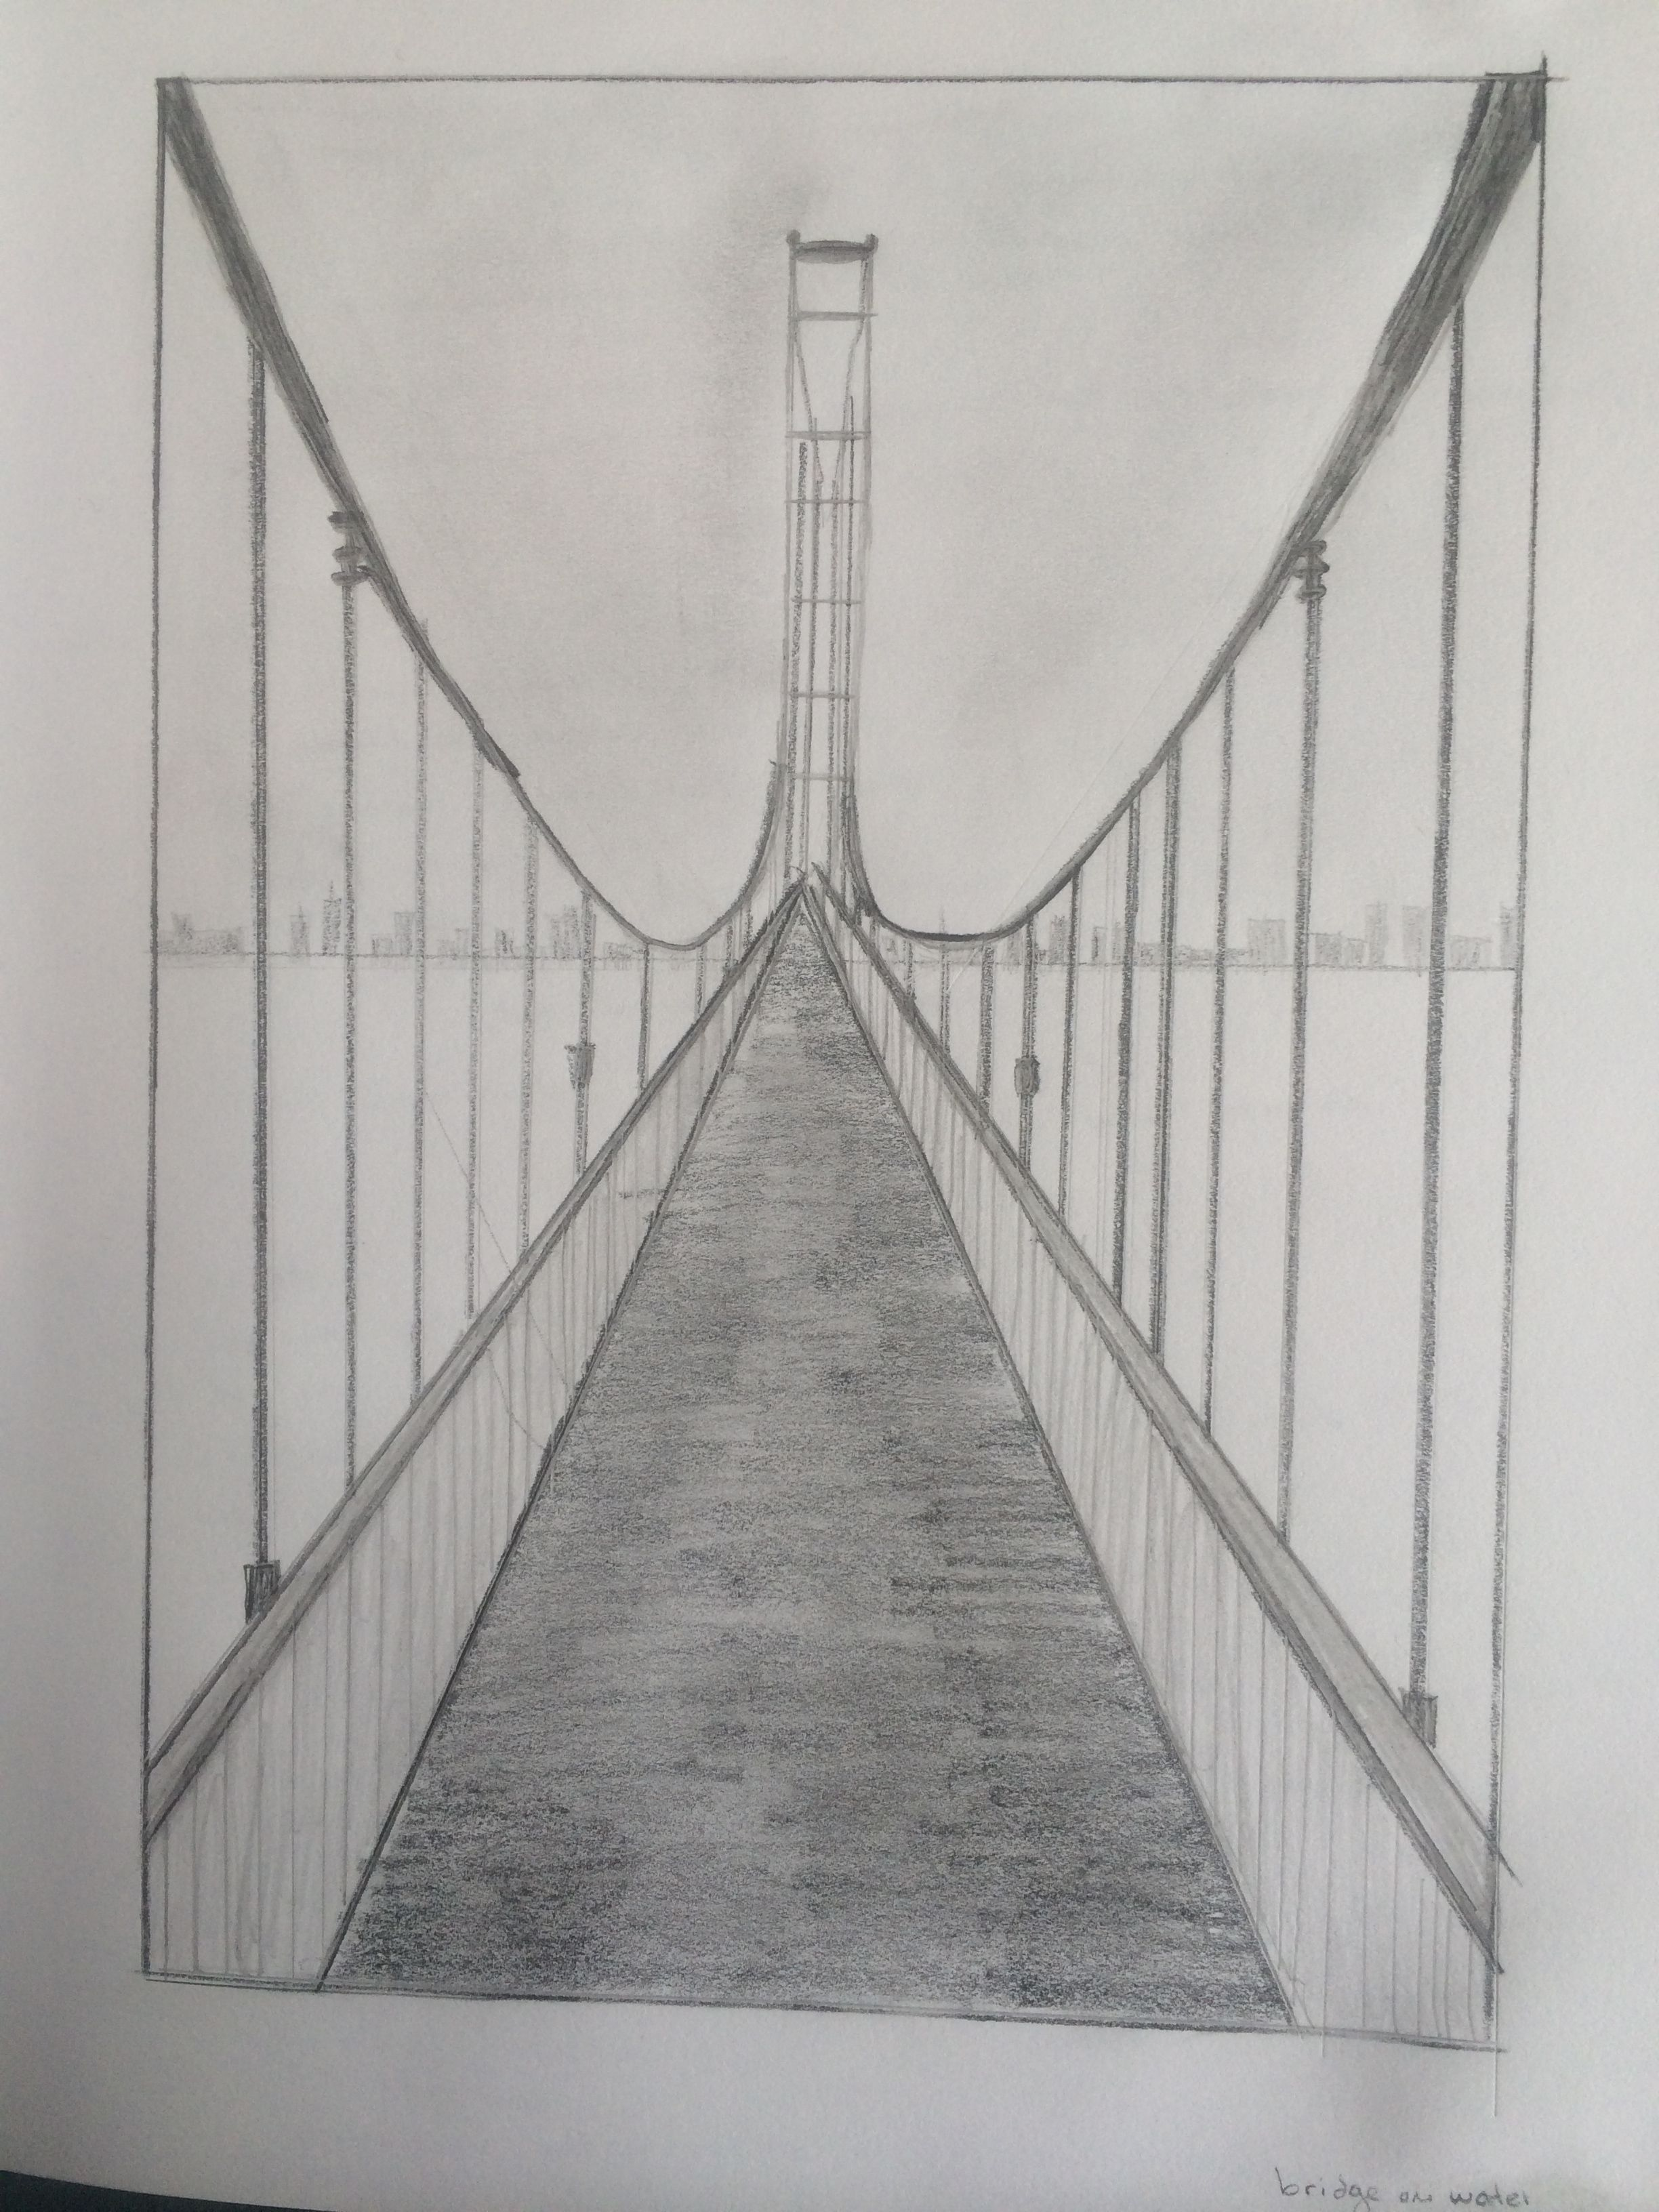 one point perspective bridge | Perspective art, One point ...Easy One Point Perspective Drawing